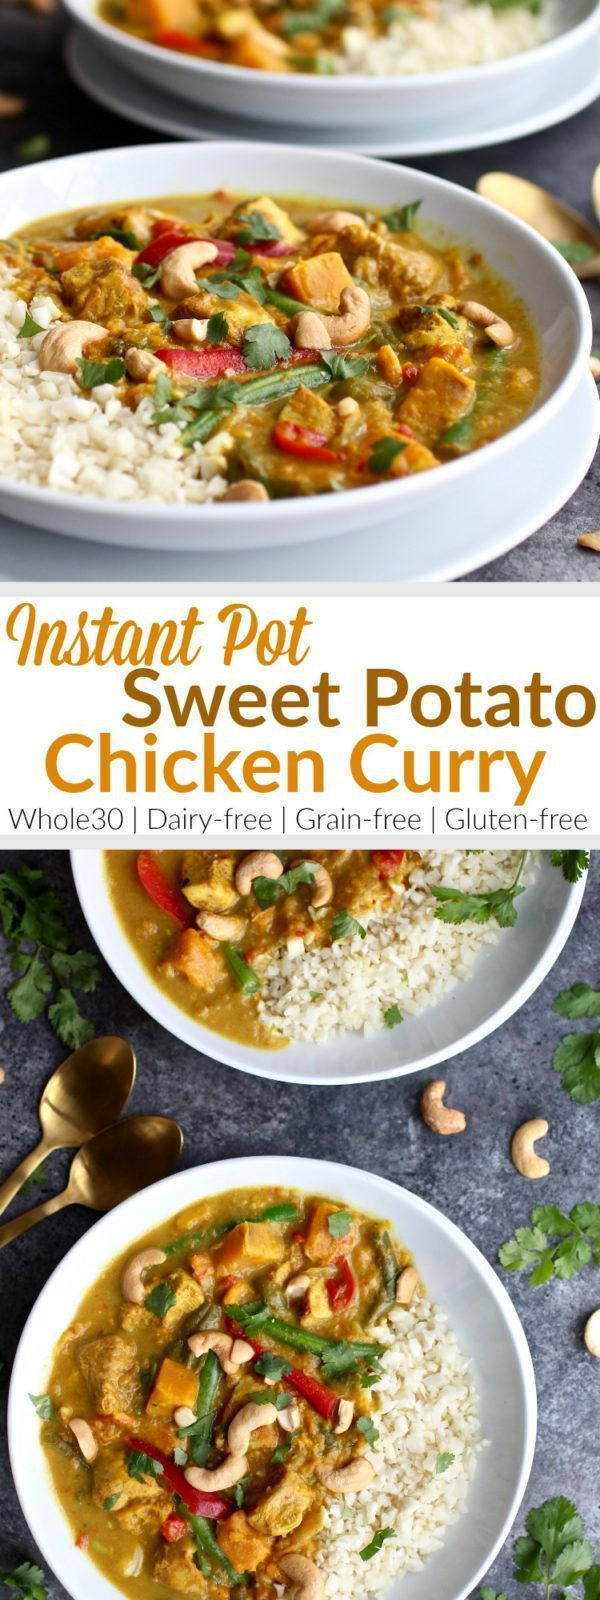 Instant Pot Sweet Potato Chicken Curry is heaven in a bowl. It comes with a little kick from the spices and a little sweet from the sweet potatoes. Every bite is just a little deliciously different | Whole30 | Paleo | Gluten-free | Grain-free | Dairy-free | http://therealfoodrds.com